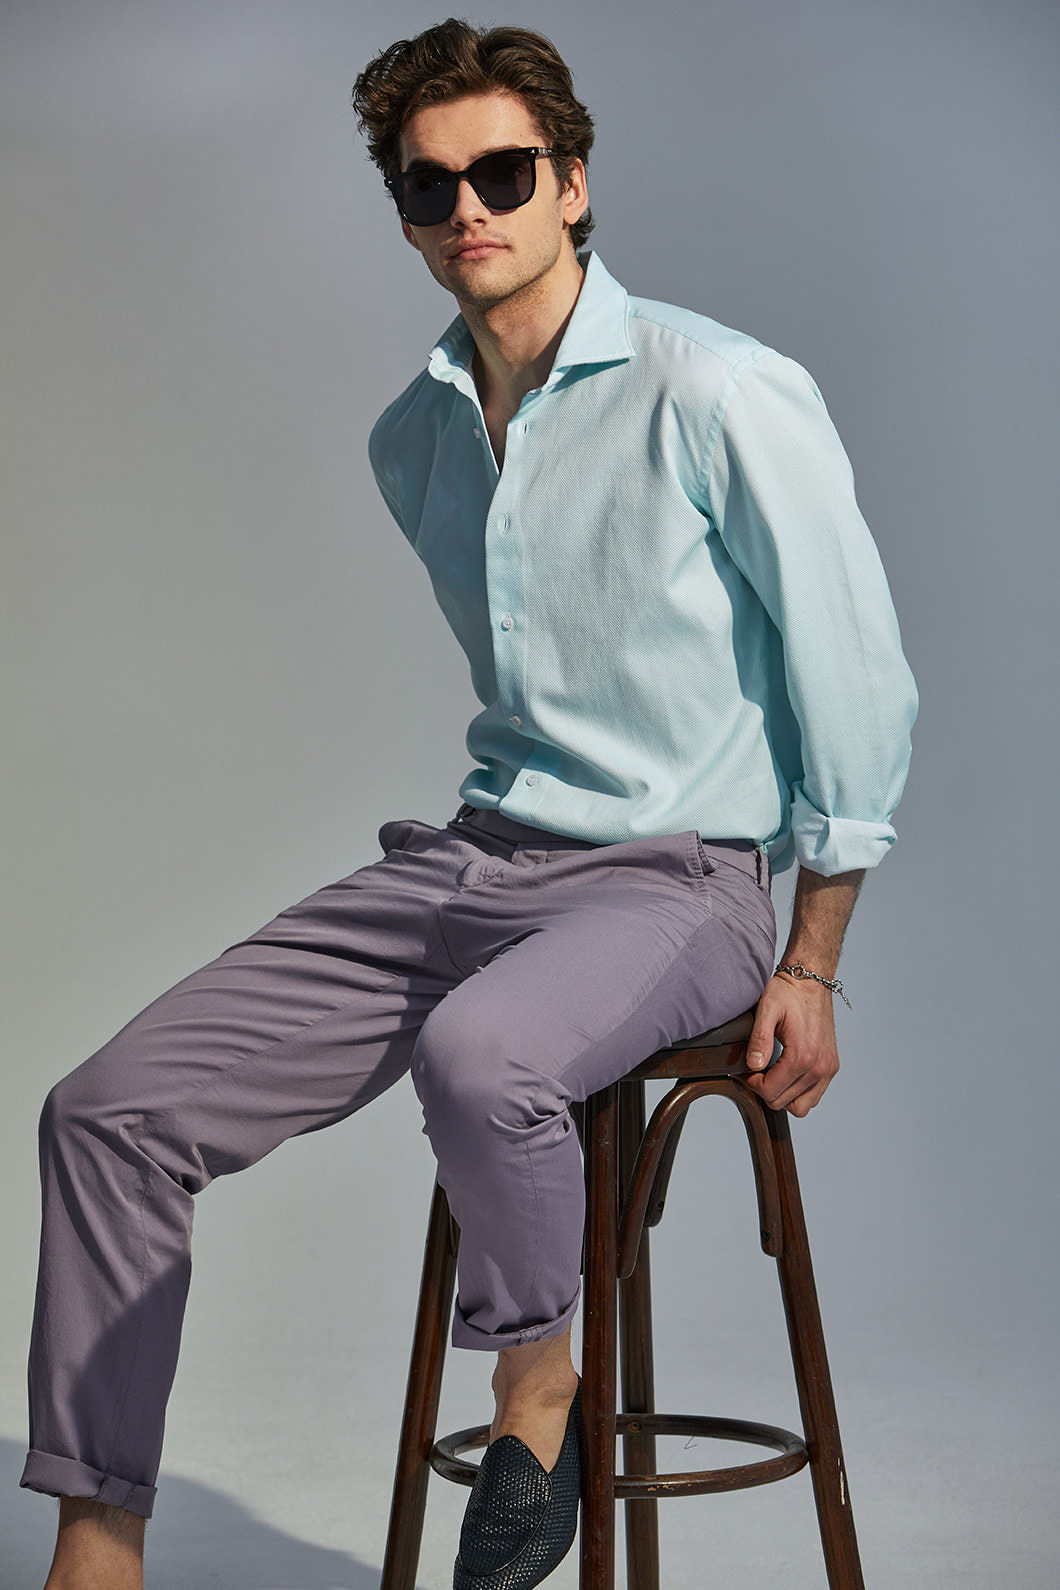 489 ITALIA Andreazza&Castelli WIDE COLLAR SHIRT-MINT품절임박!-주간베스트